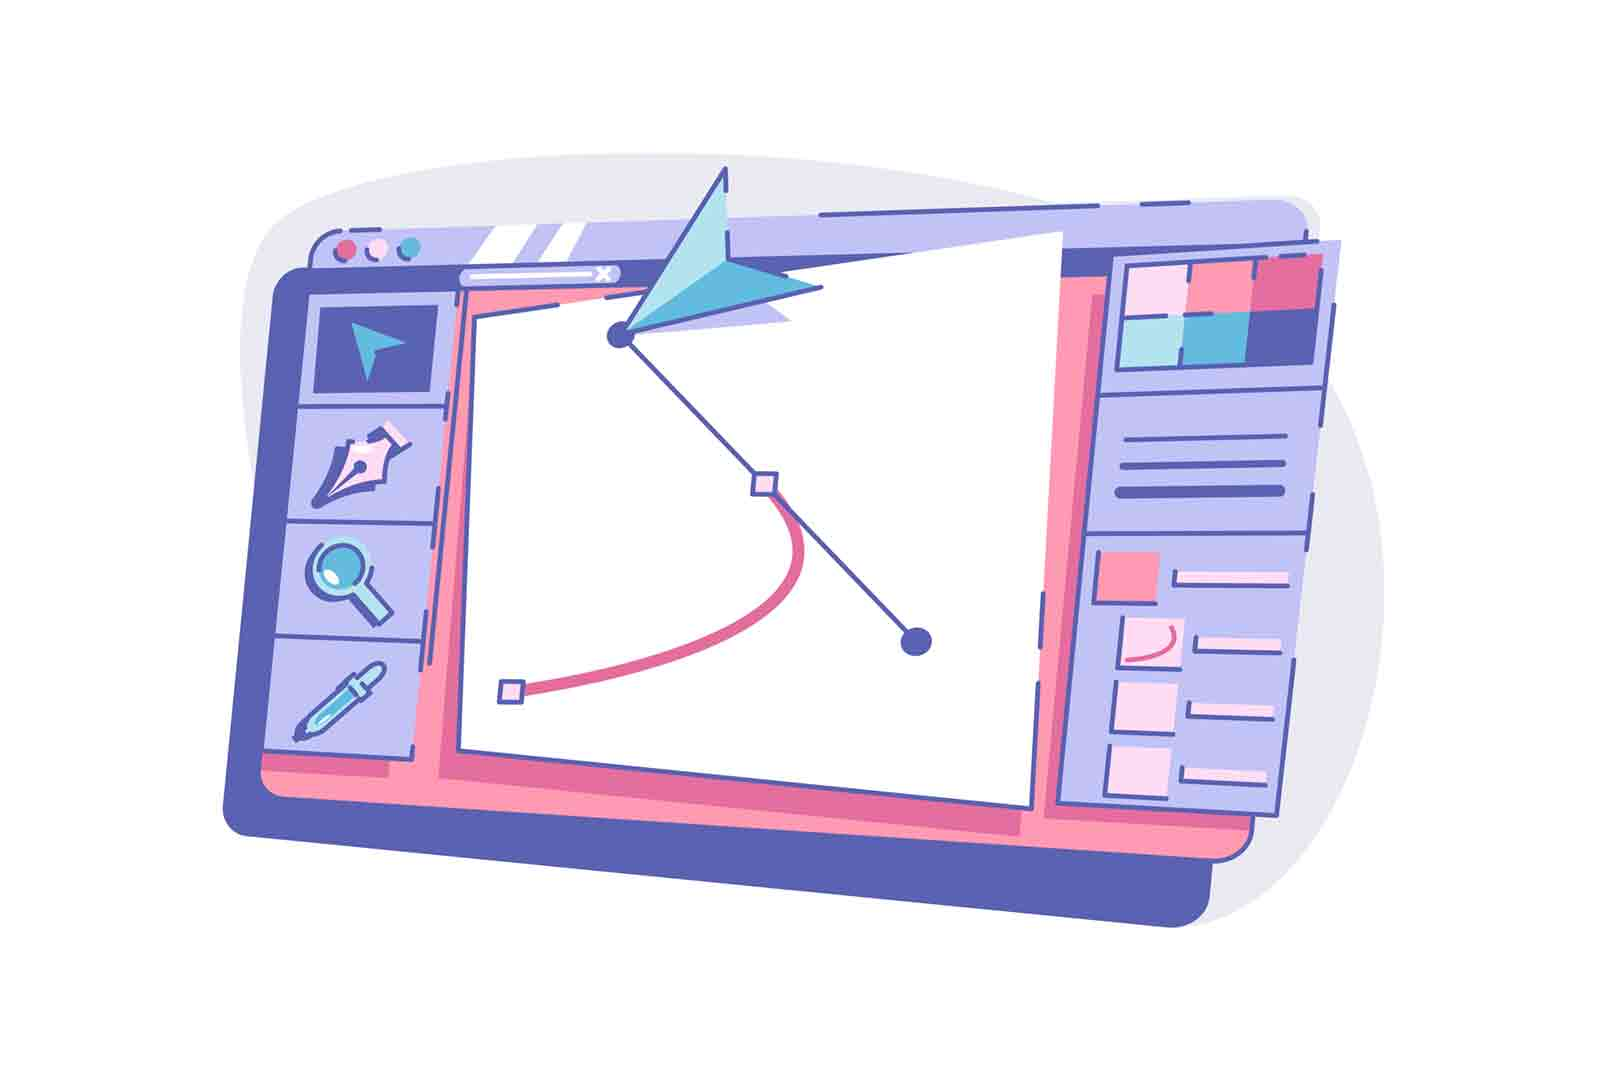 Modern device with graphic vector illustration. Interface with drawing flat style. Tool for painting. Creativity art and technology concept.